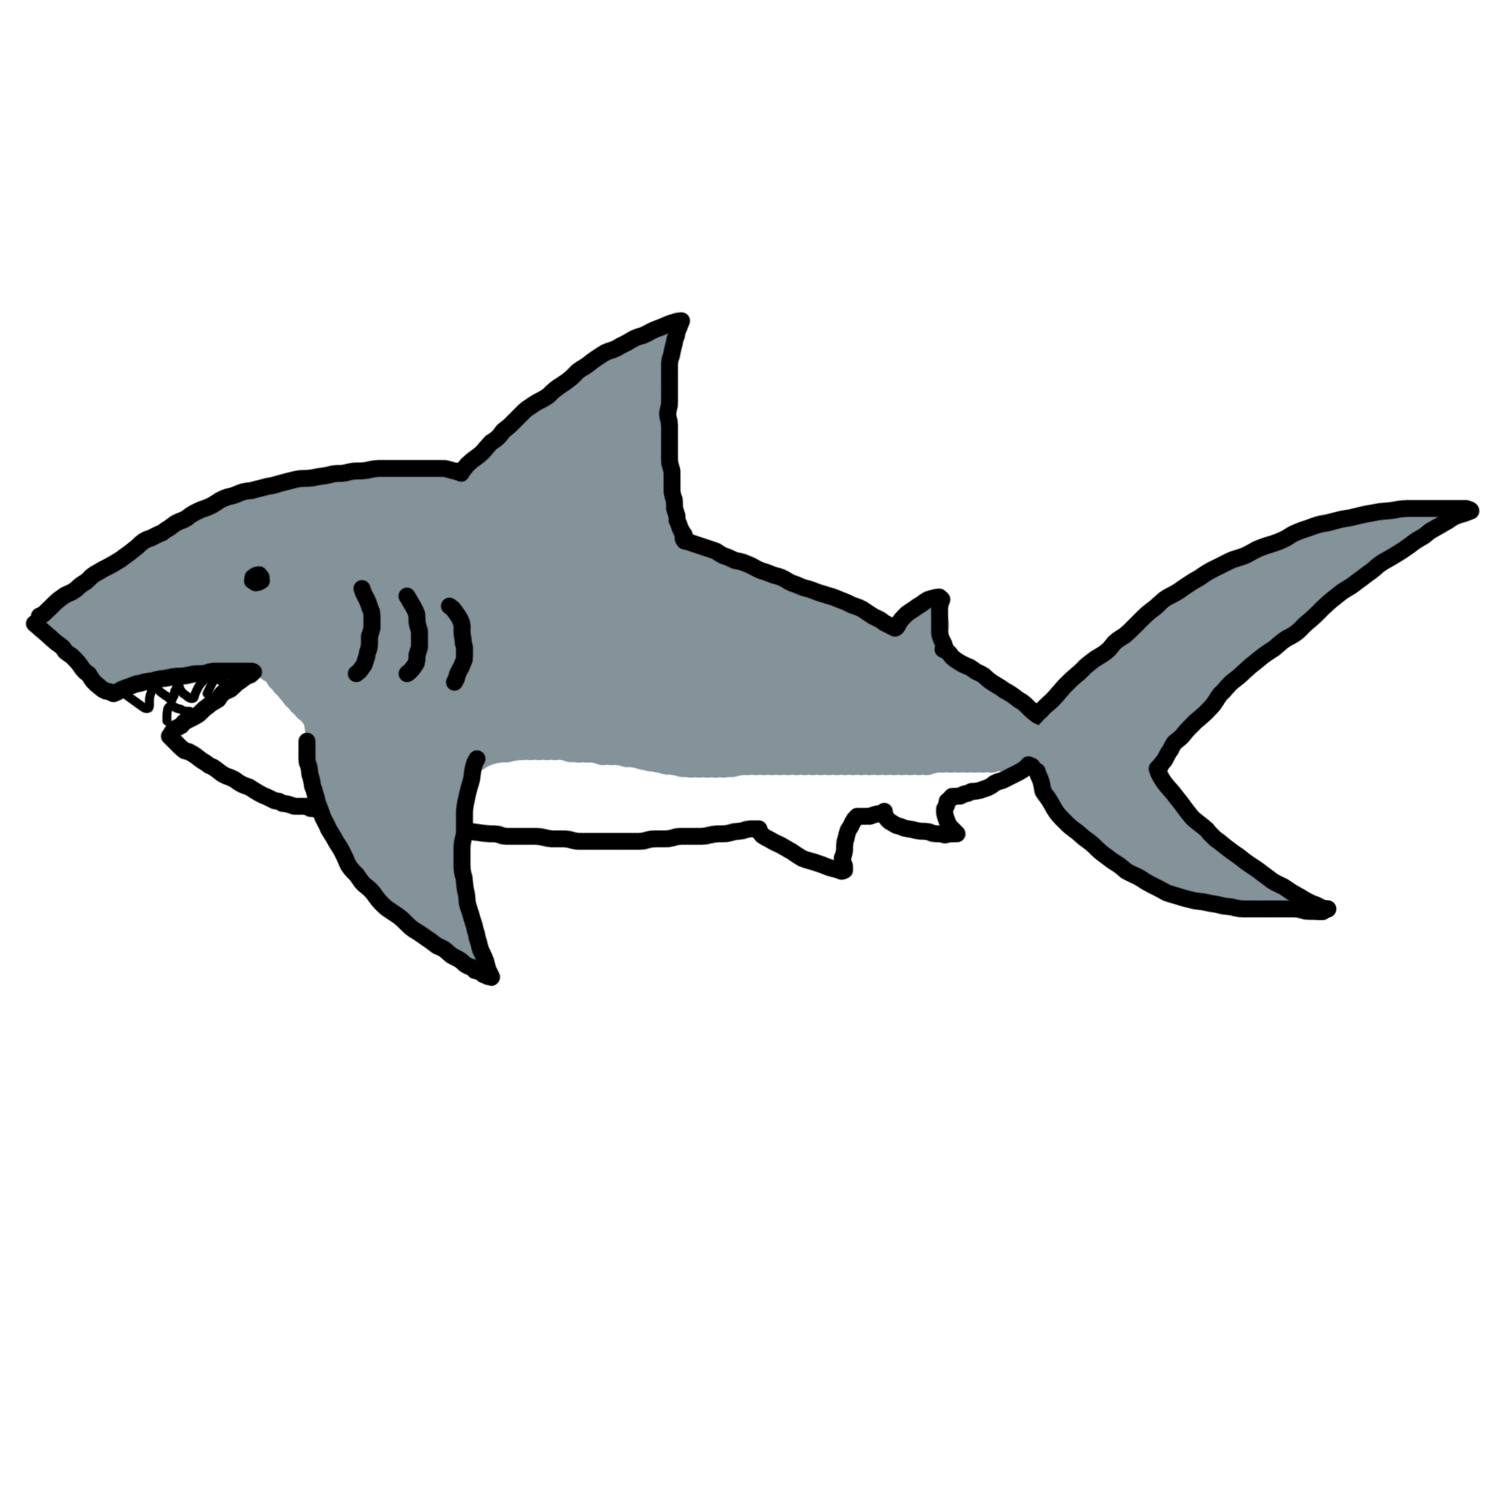 Shark clipart #16, Download drawings